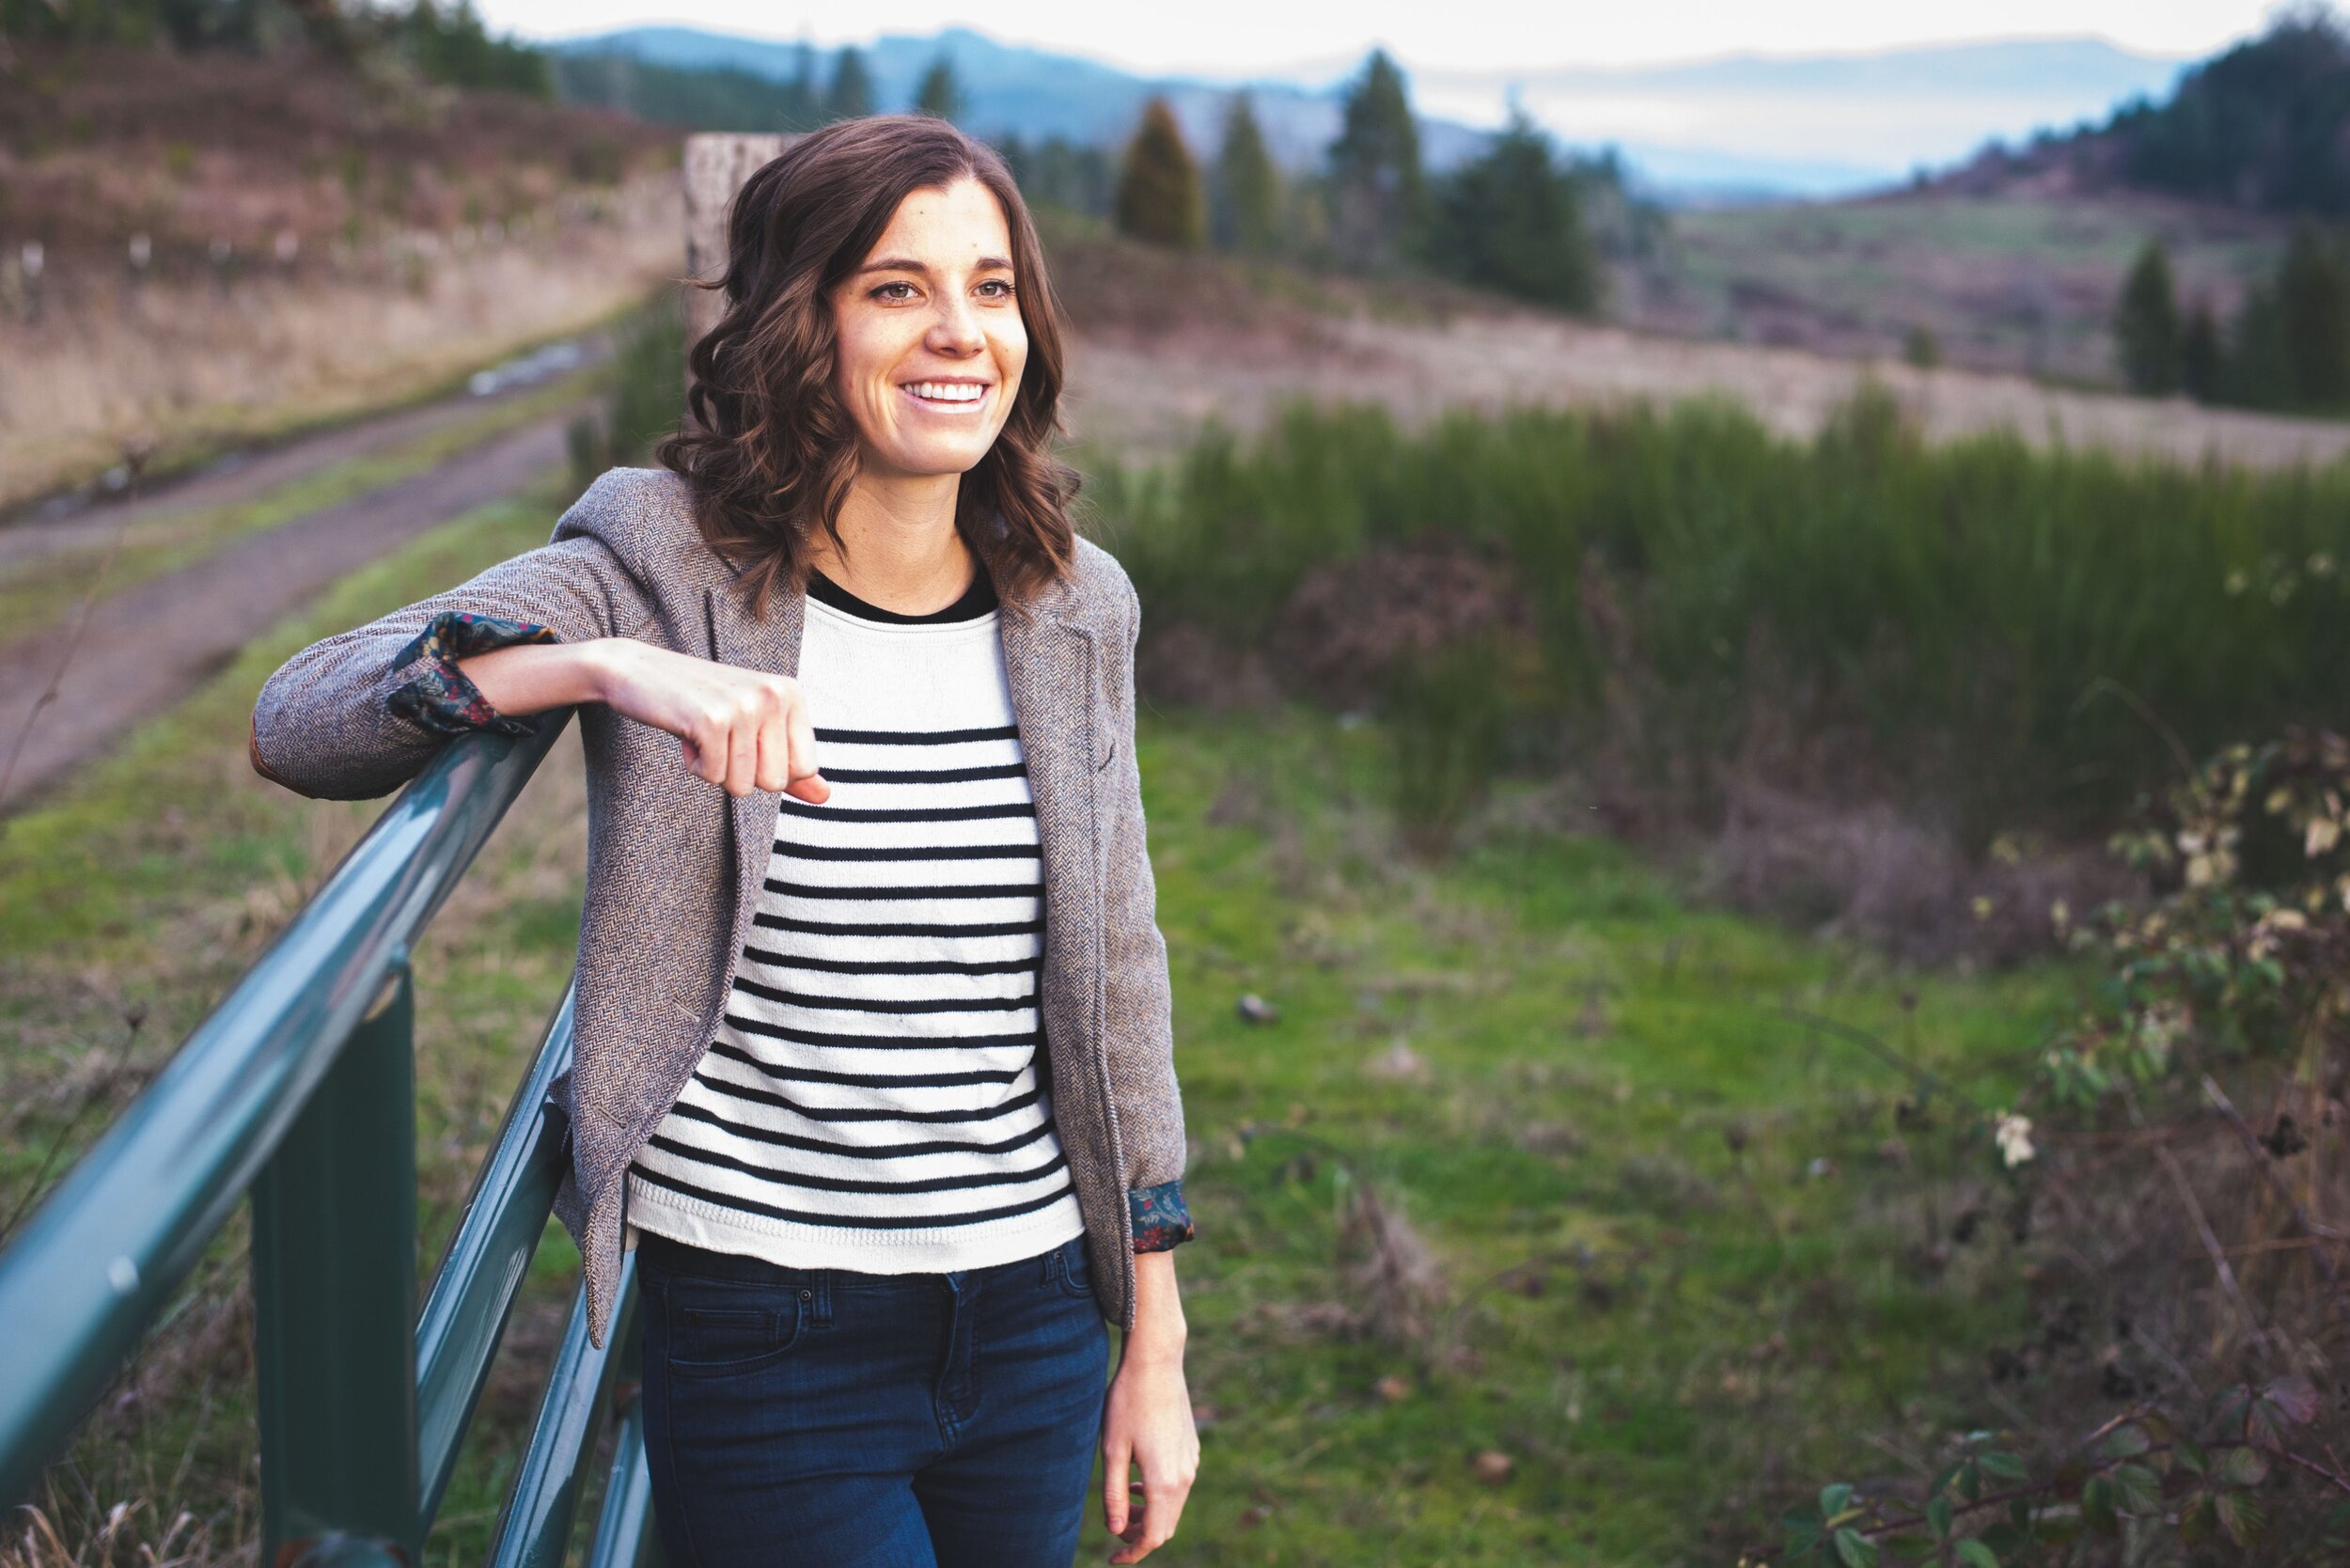 Elise Harboldt works in the health ministries department of the General Conference, and enjoys studying and sharing beautiful theology on the side.